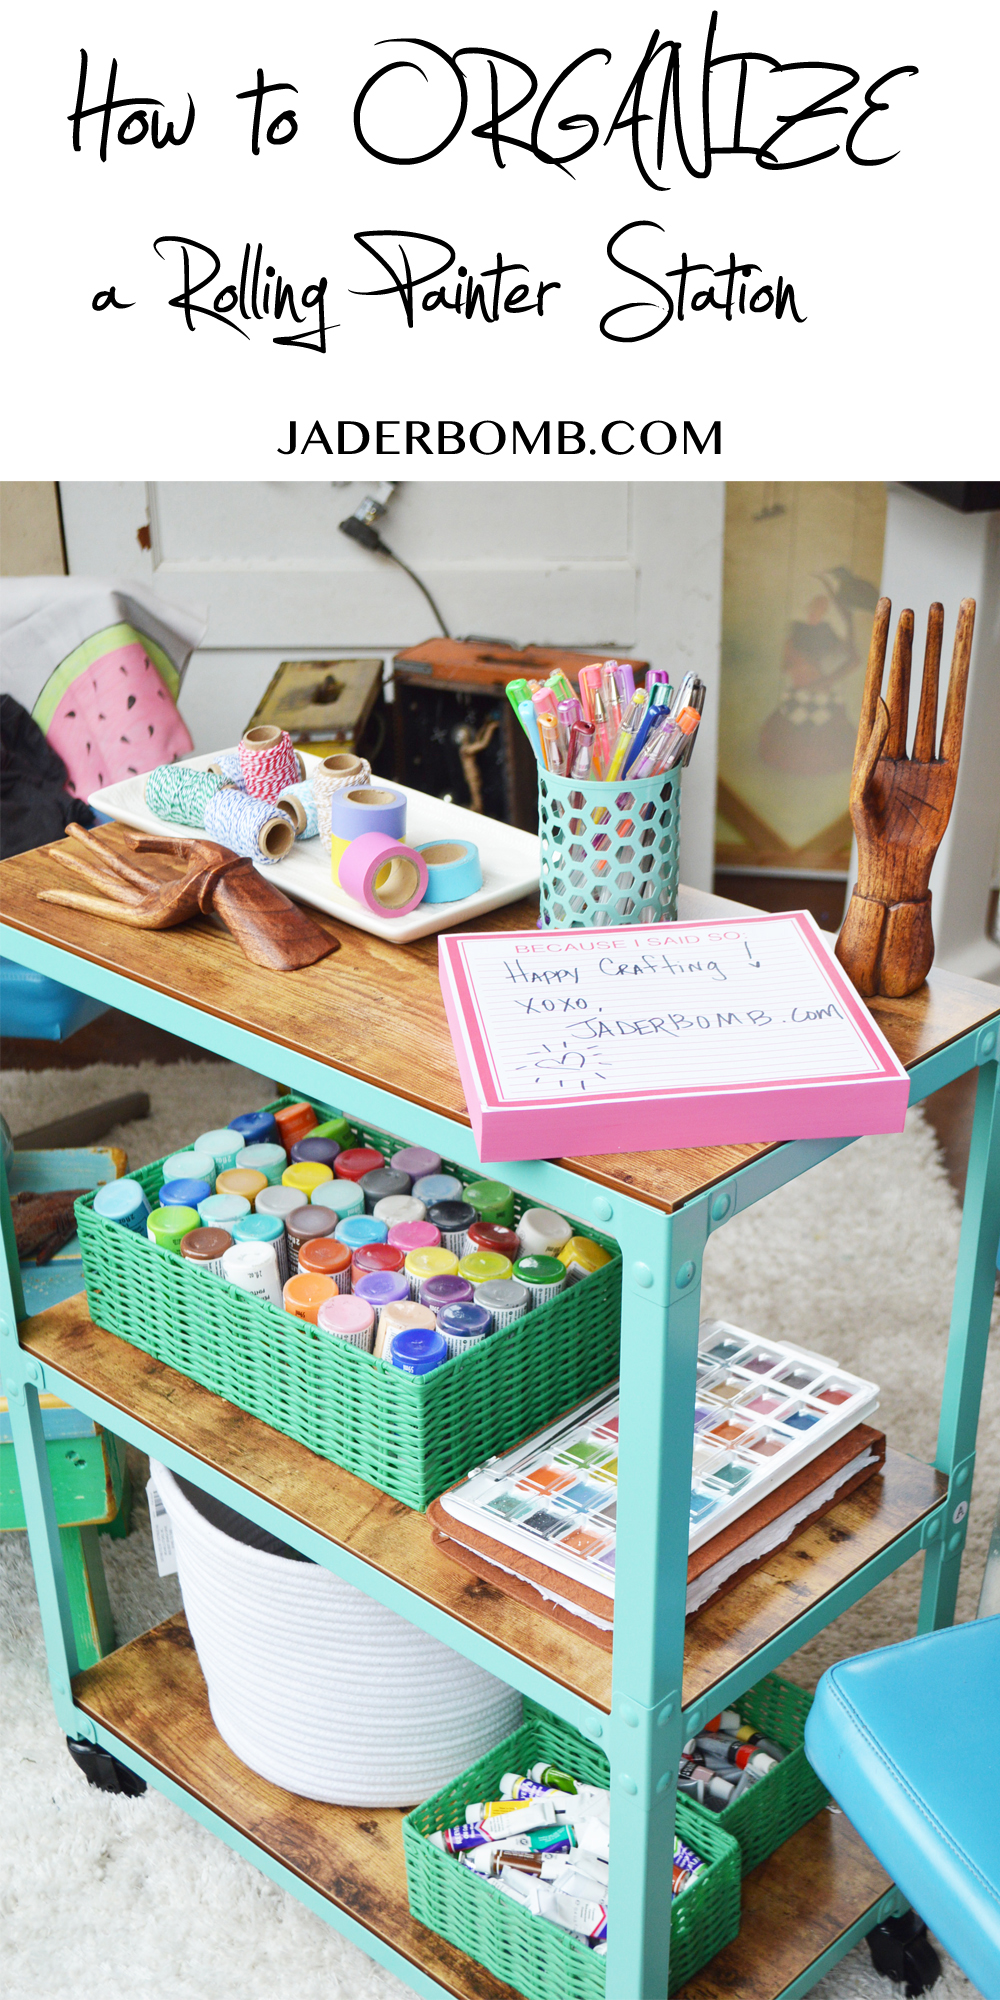 organize-your-craft-room